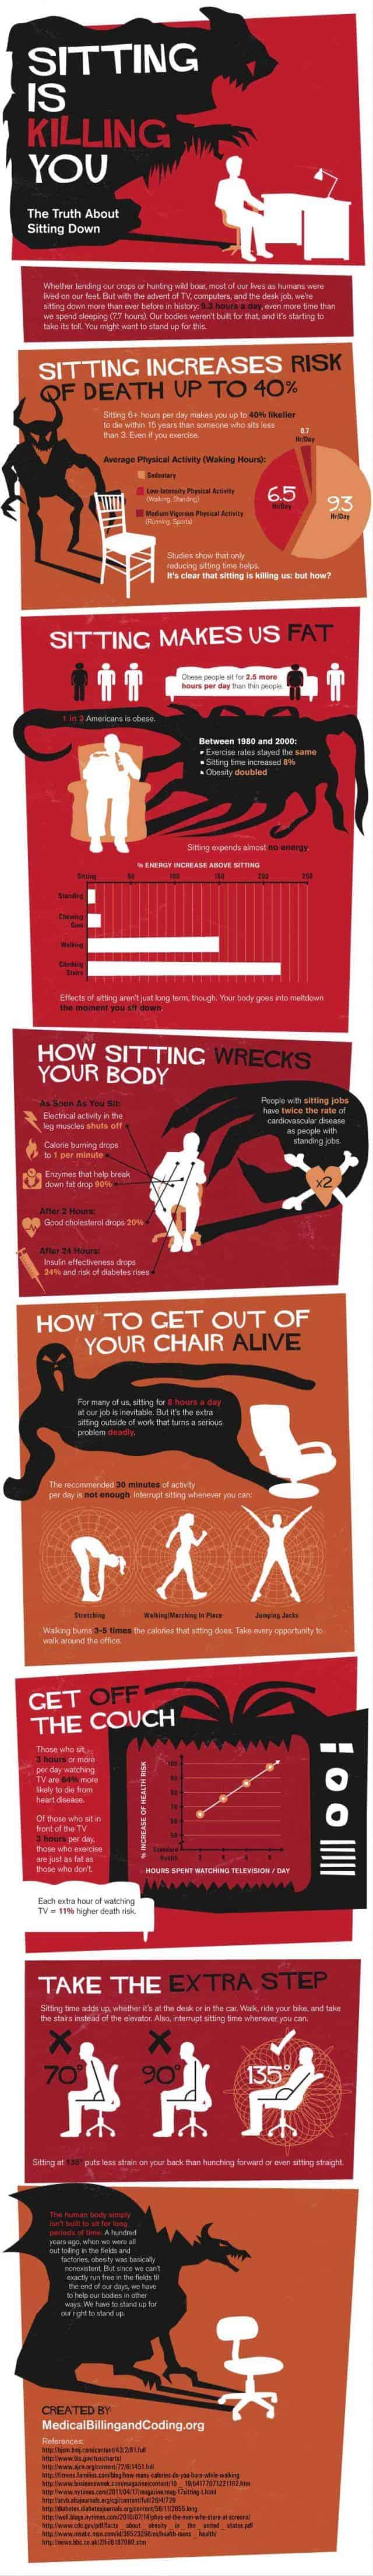 sitting-is-killing-you-infographic-640x4416